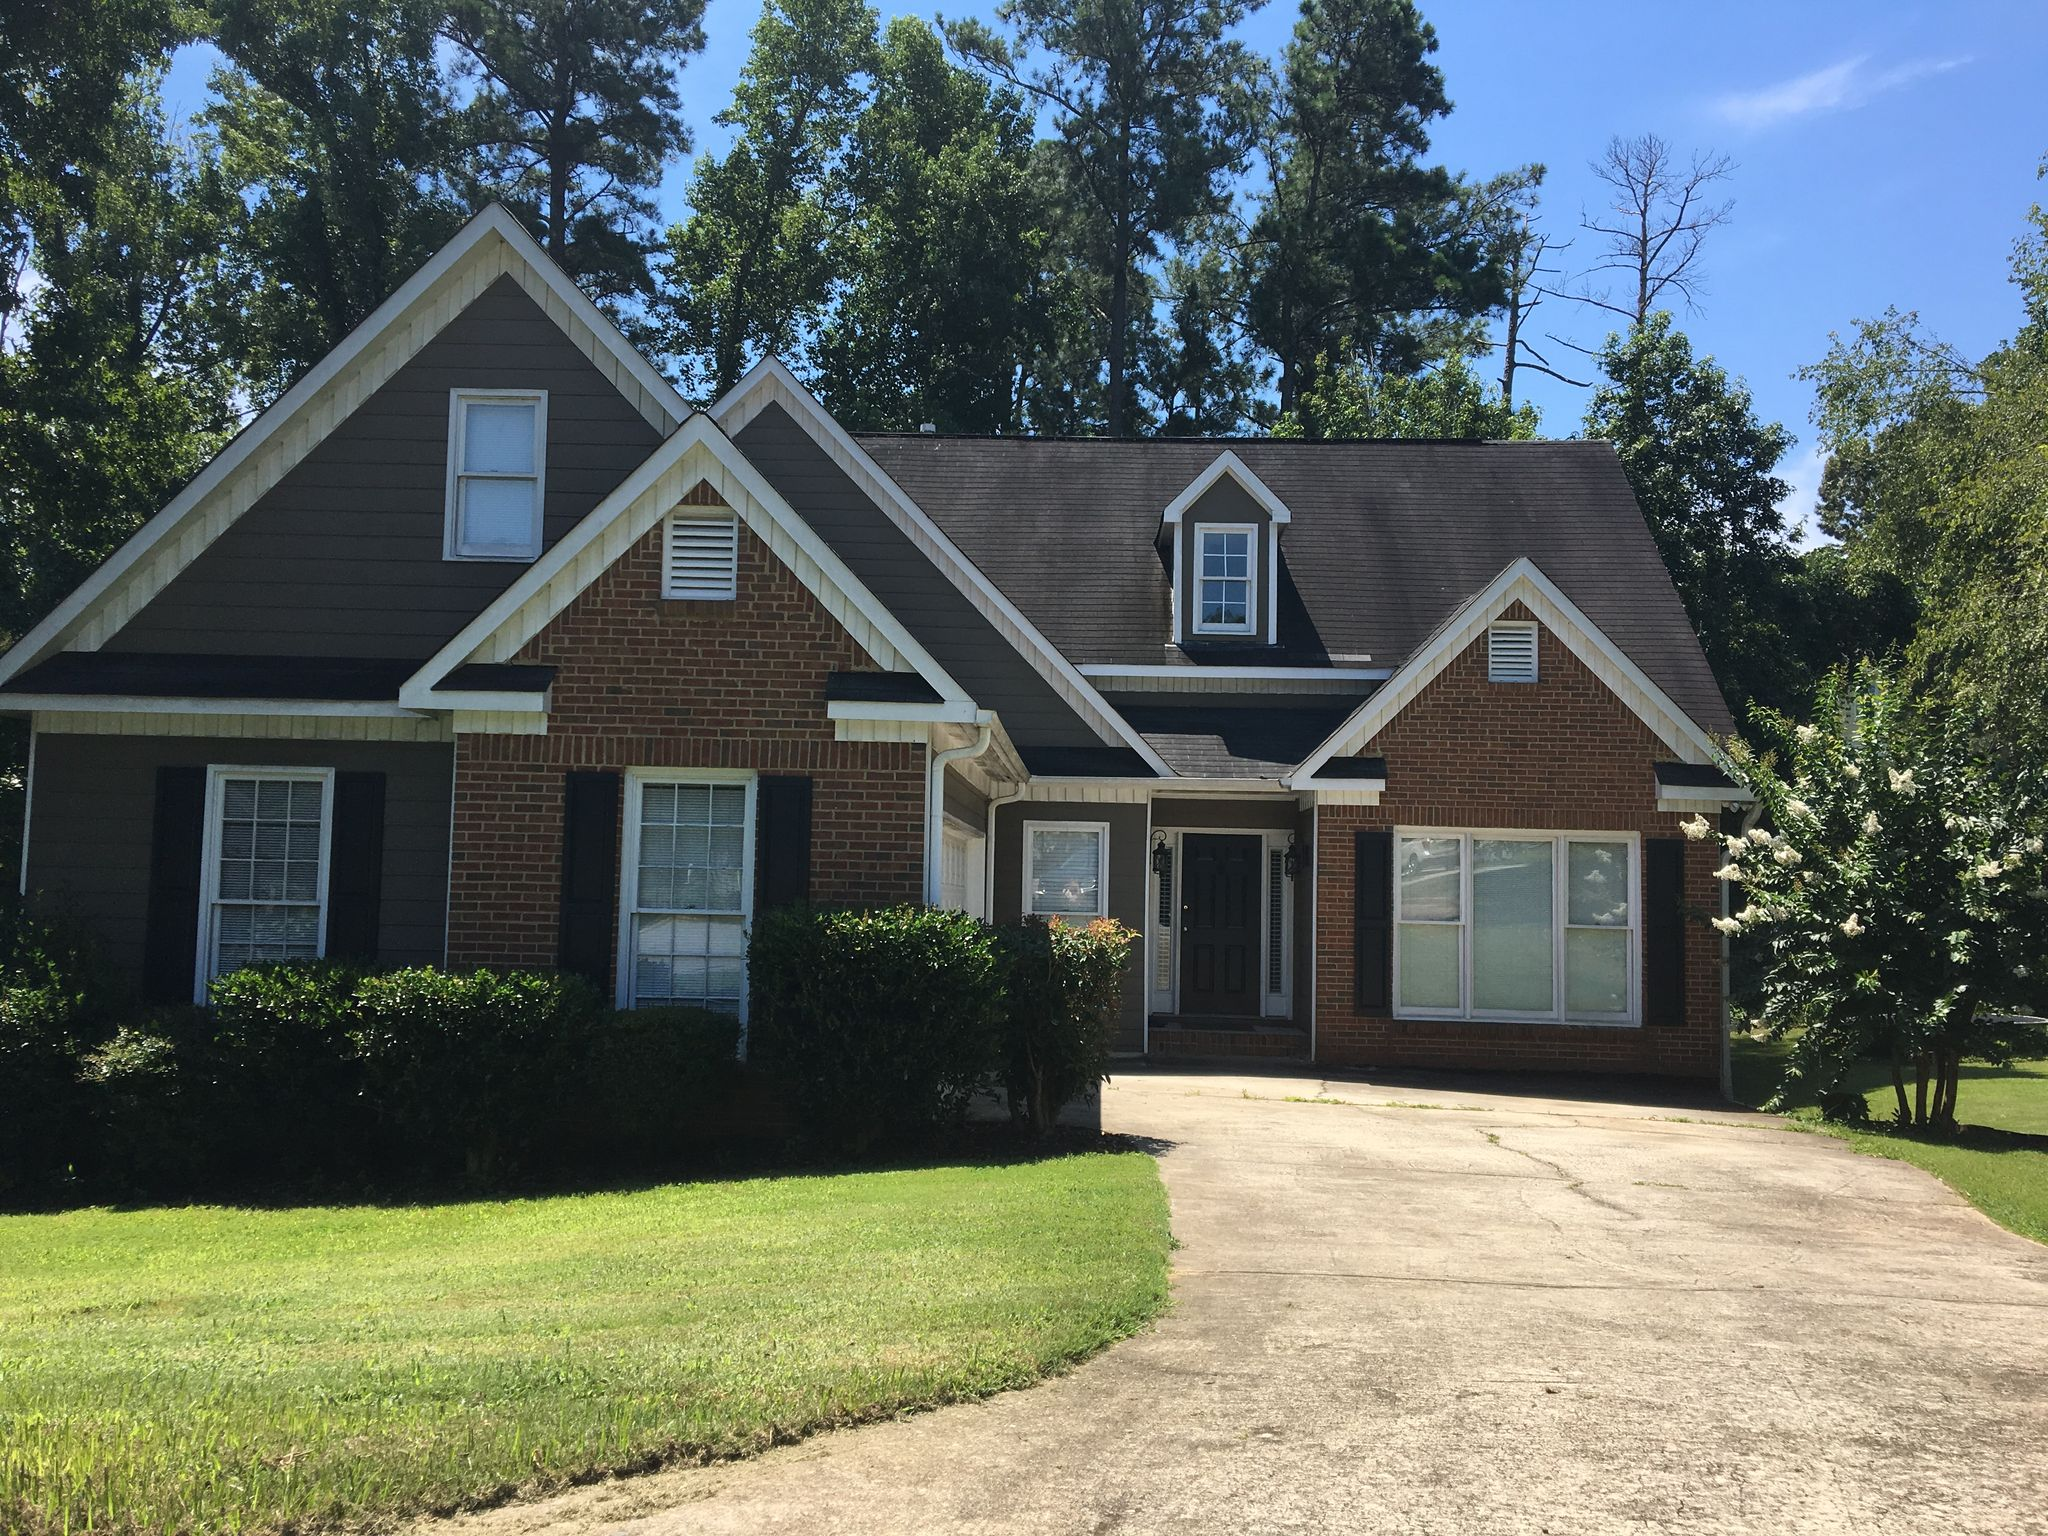 Strange 135 Brieghton Ct Macon Ga 31210 3 Bed 2 Bath Single Beutiful Home Inspiration Ponolprimenicaraguapropertycom